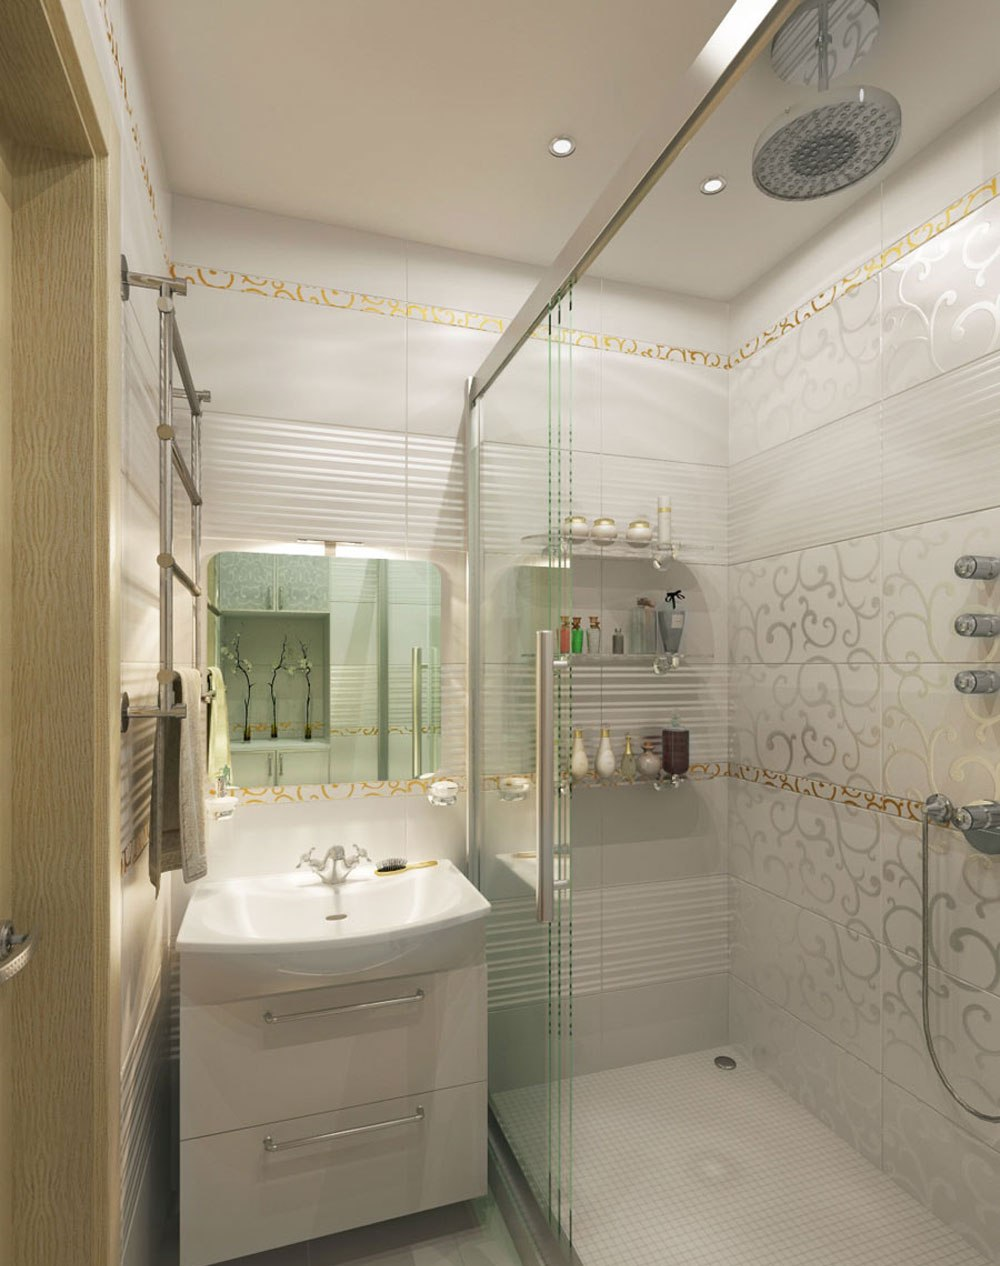 How to decorate a small bathroom and still save space 5 How to decorate a small bathroom and still save space